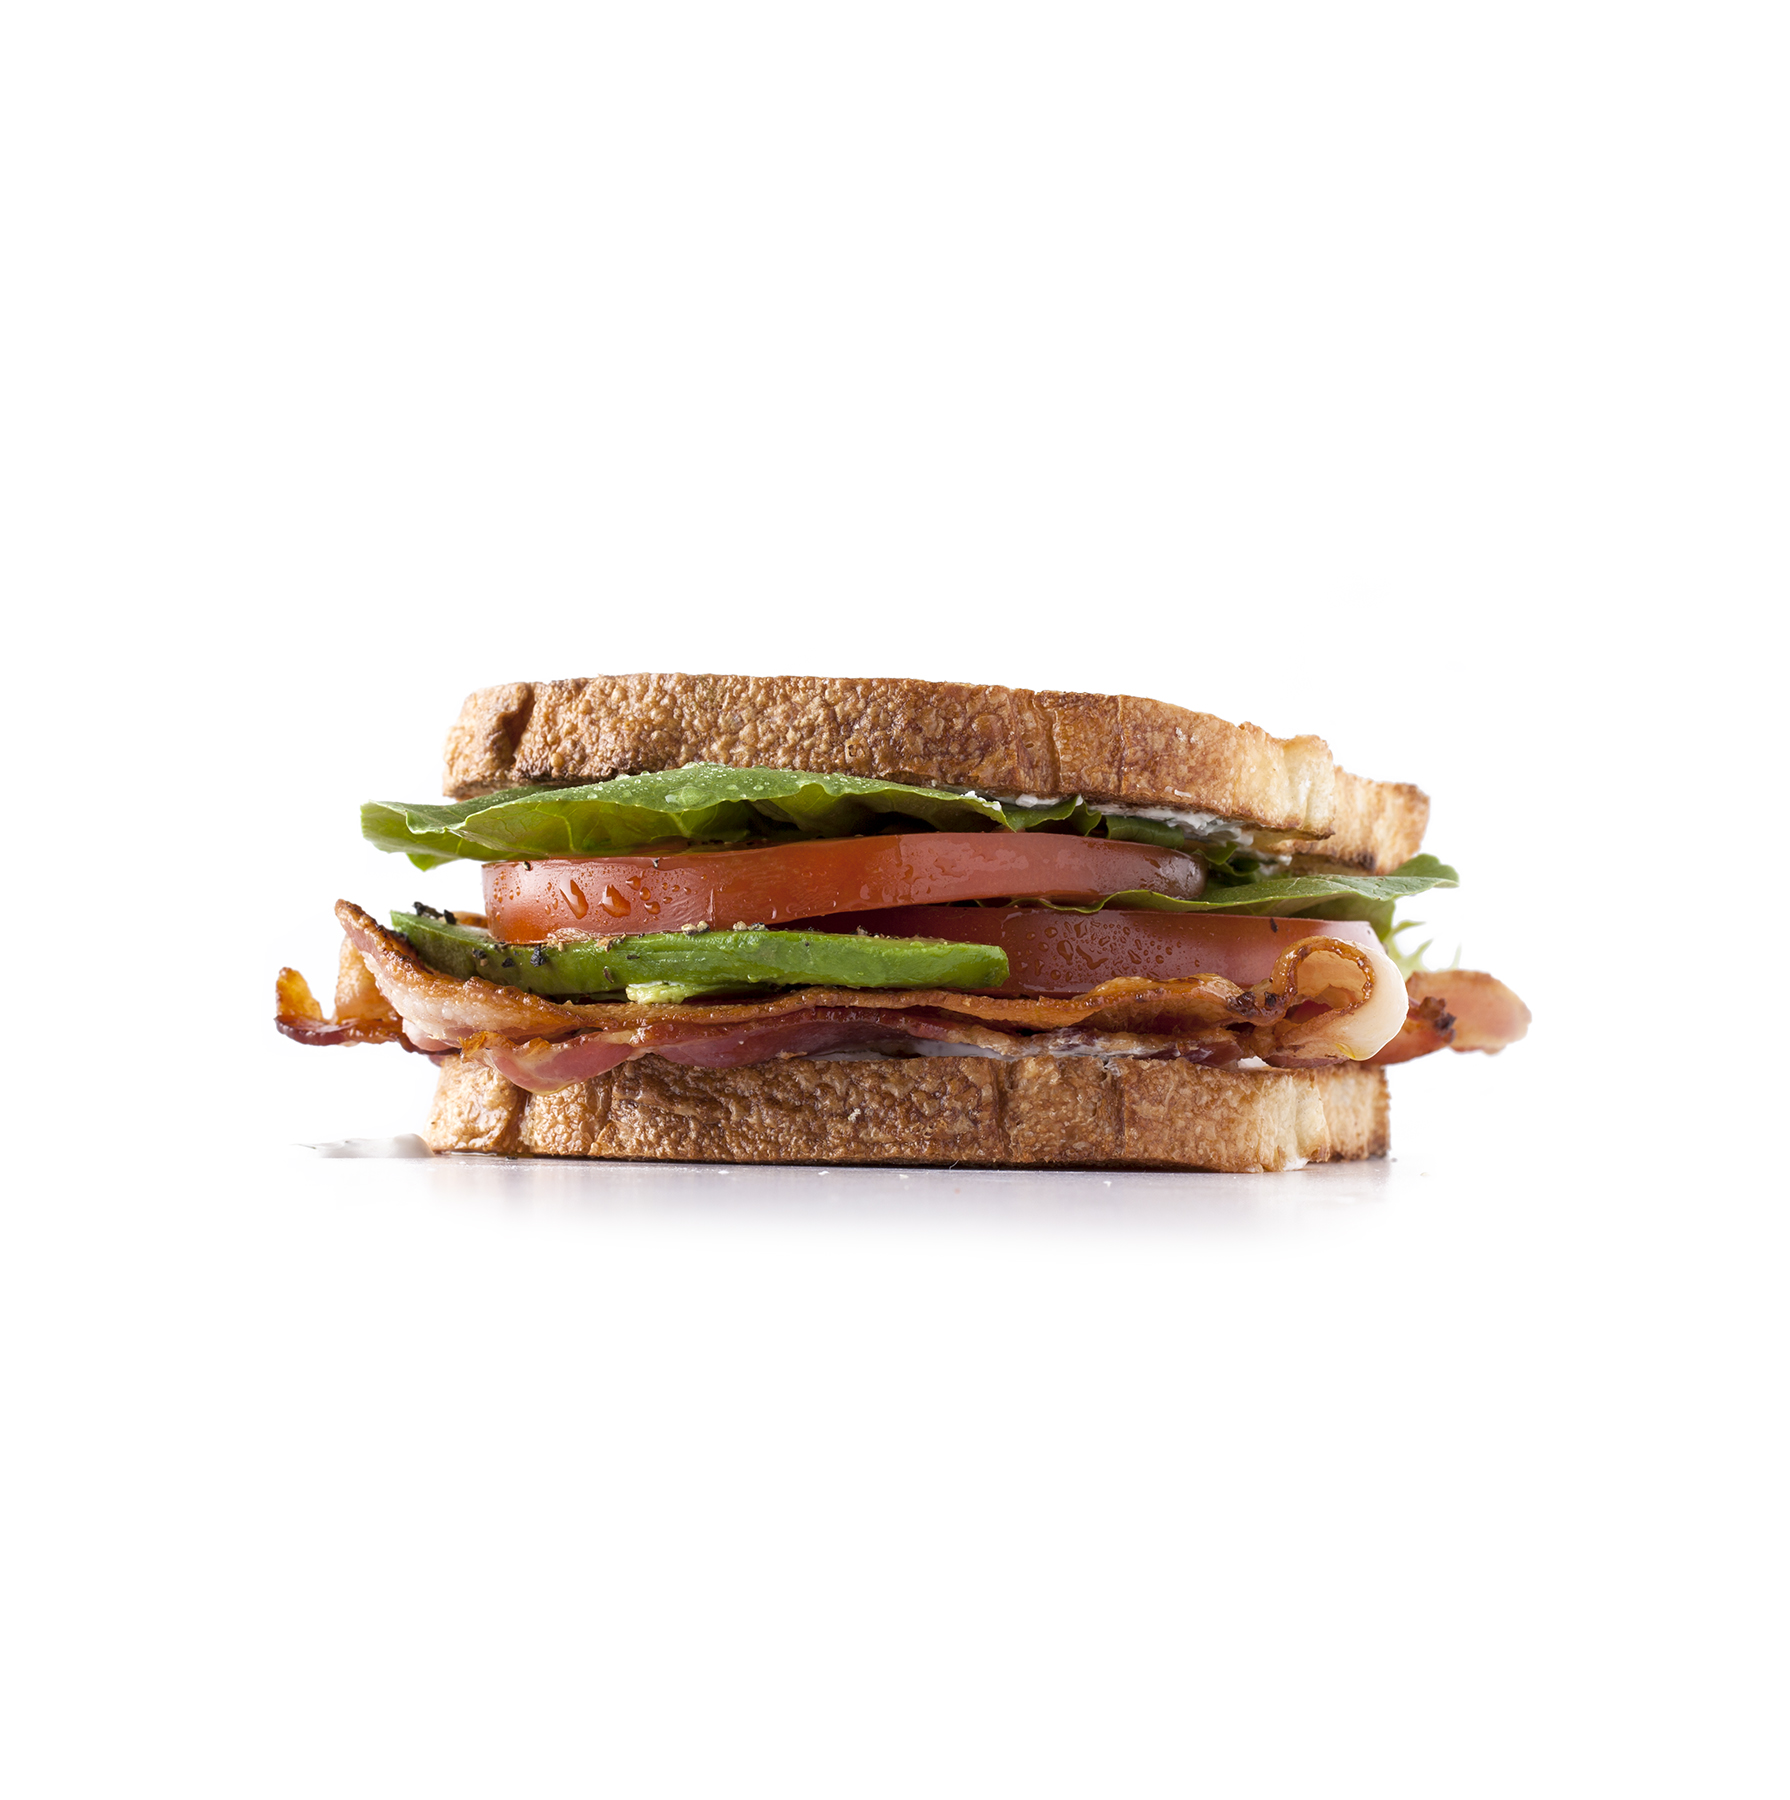 Tomato, Bacon, and Garlic Mayo Sandwich